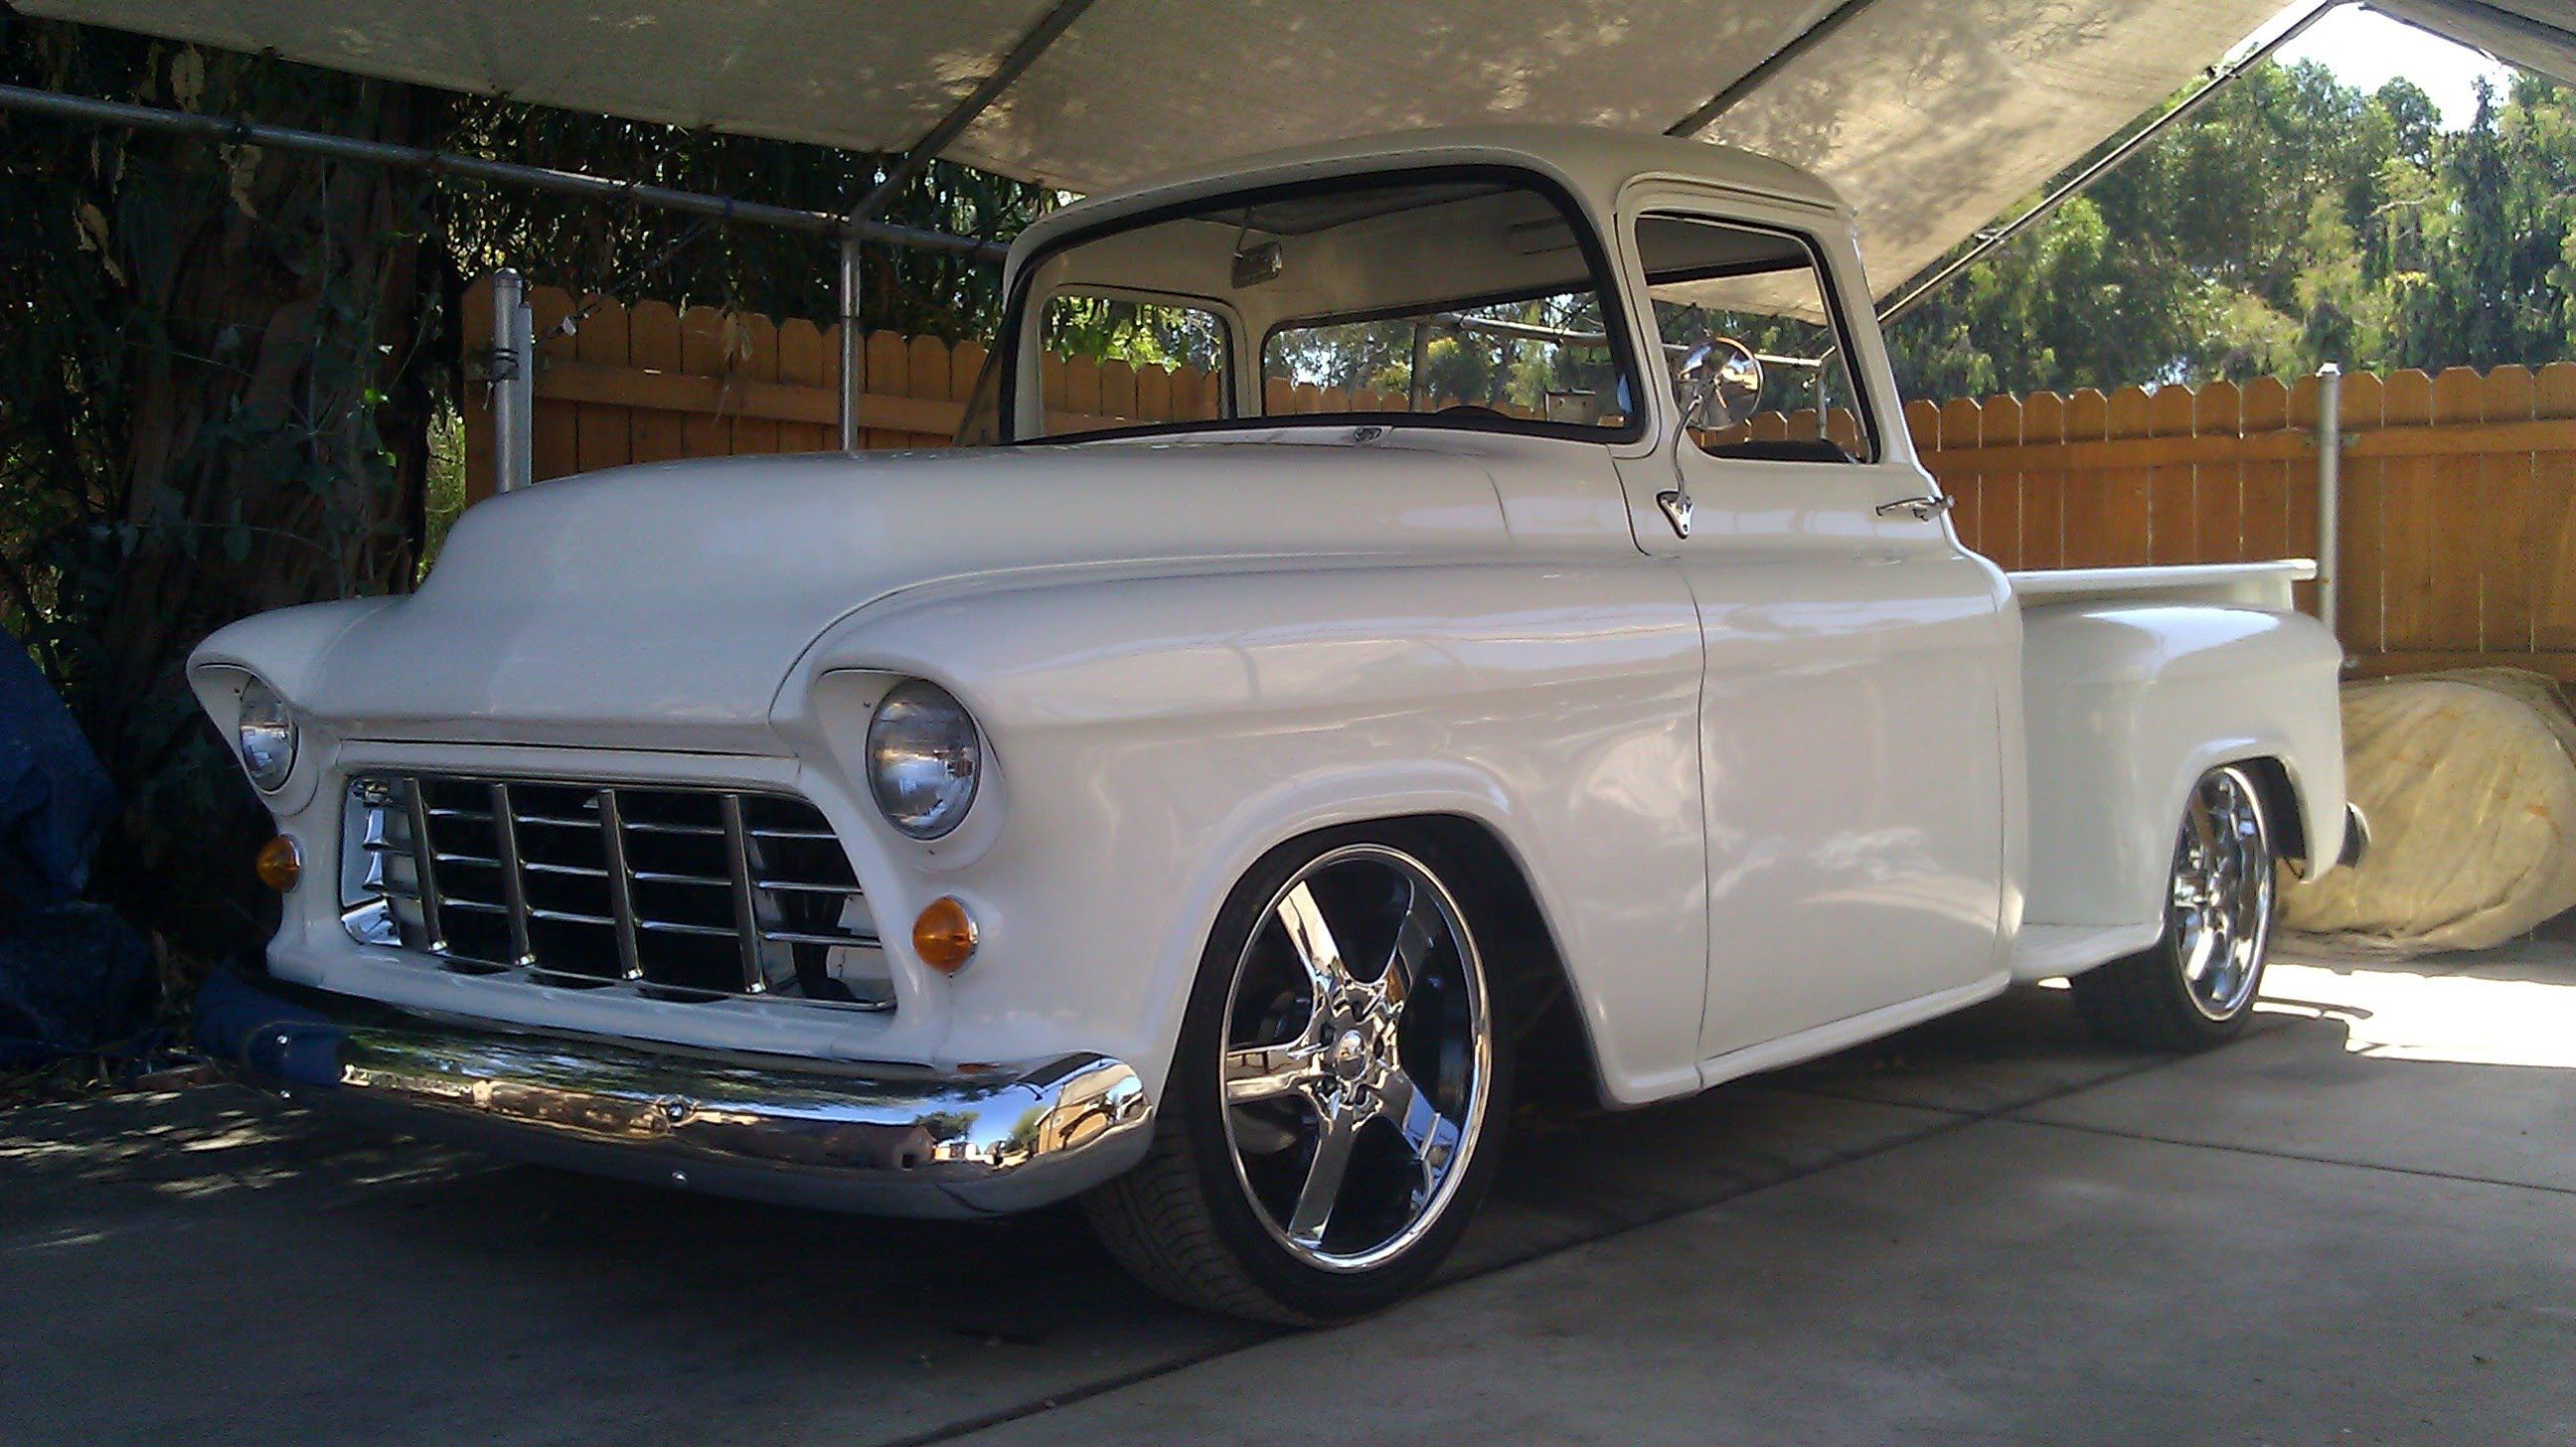 55 chevy pickup build 1955 chevy truck 2 year backyard rebuild step by step youtube. Black Bedroom Furniture Sets. Home Design Ideas